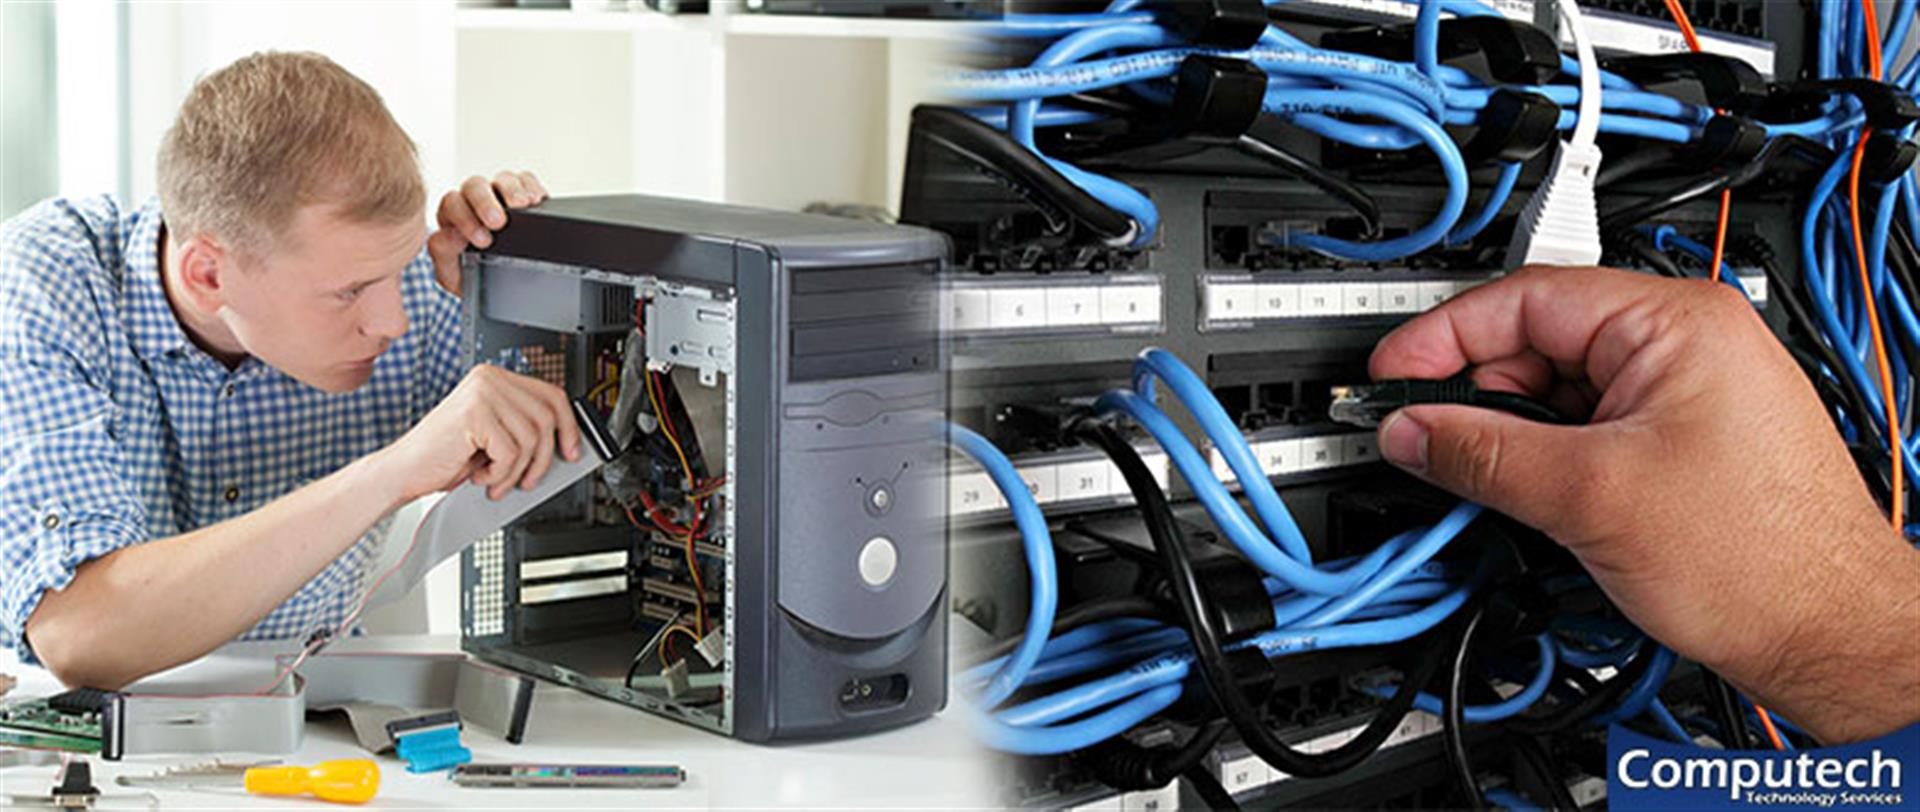 Fairburn Georgia On Site Computer PC & Printer Repairs, Networking, Voice & Data Cabling Solutions